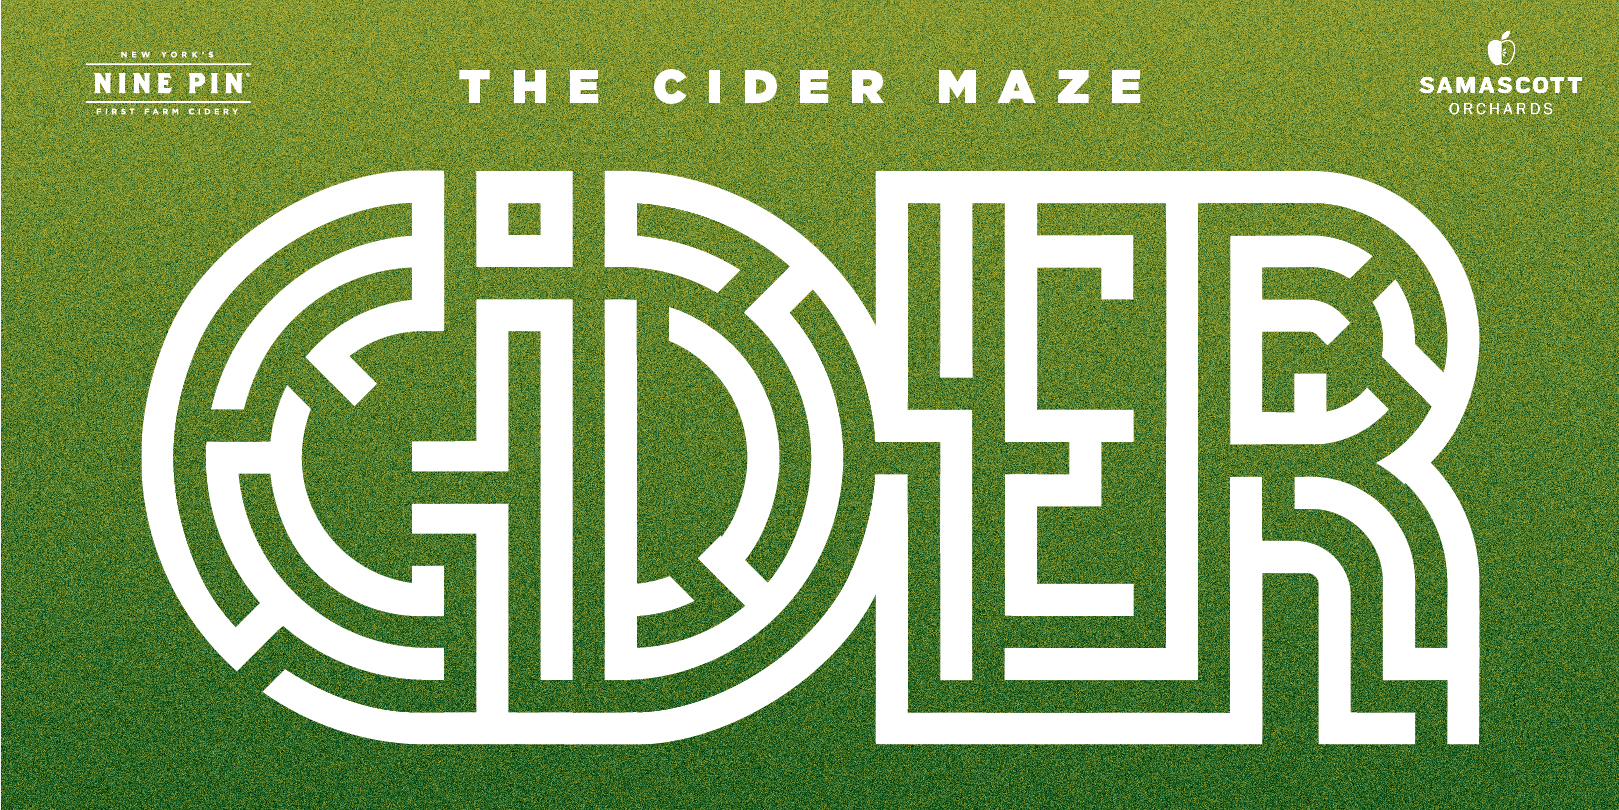 Green image that reads The Cider Maze Nine Pin Cider